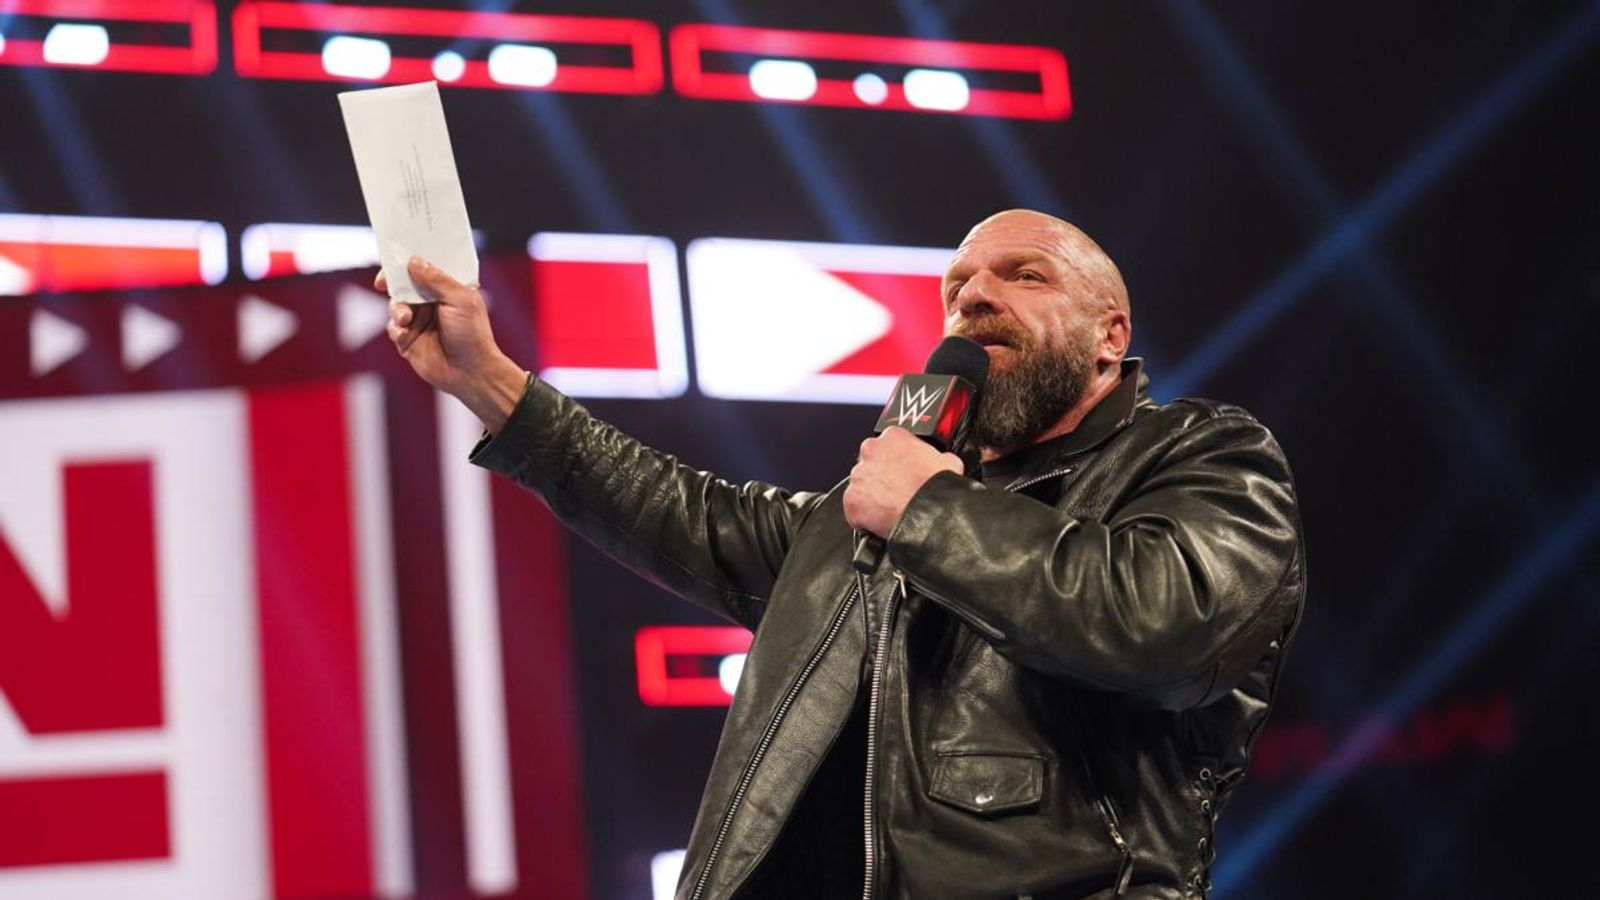 bb176954c WWE Raw  Triple H puts career on line for WrestleMania match with Batista